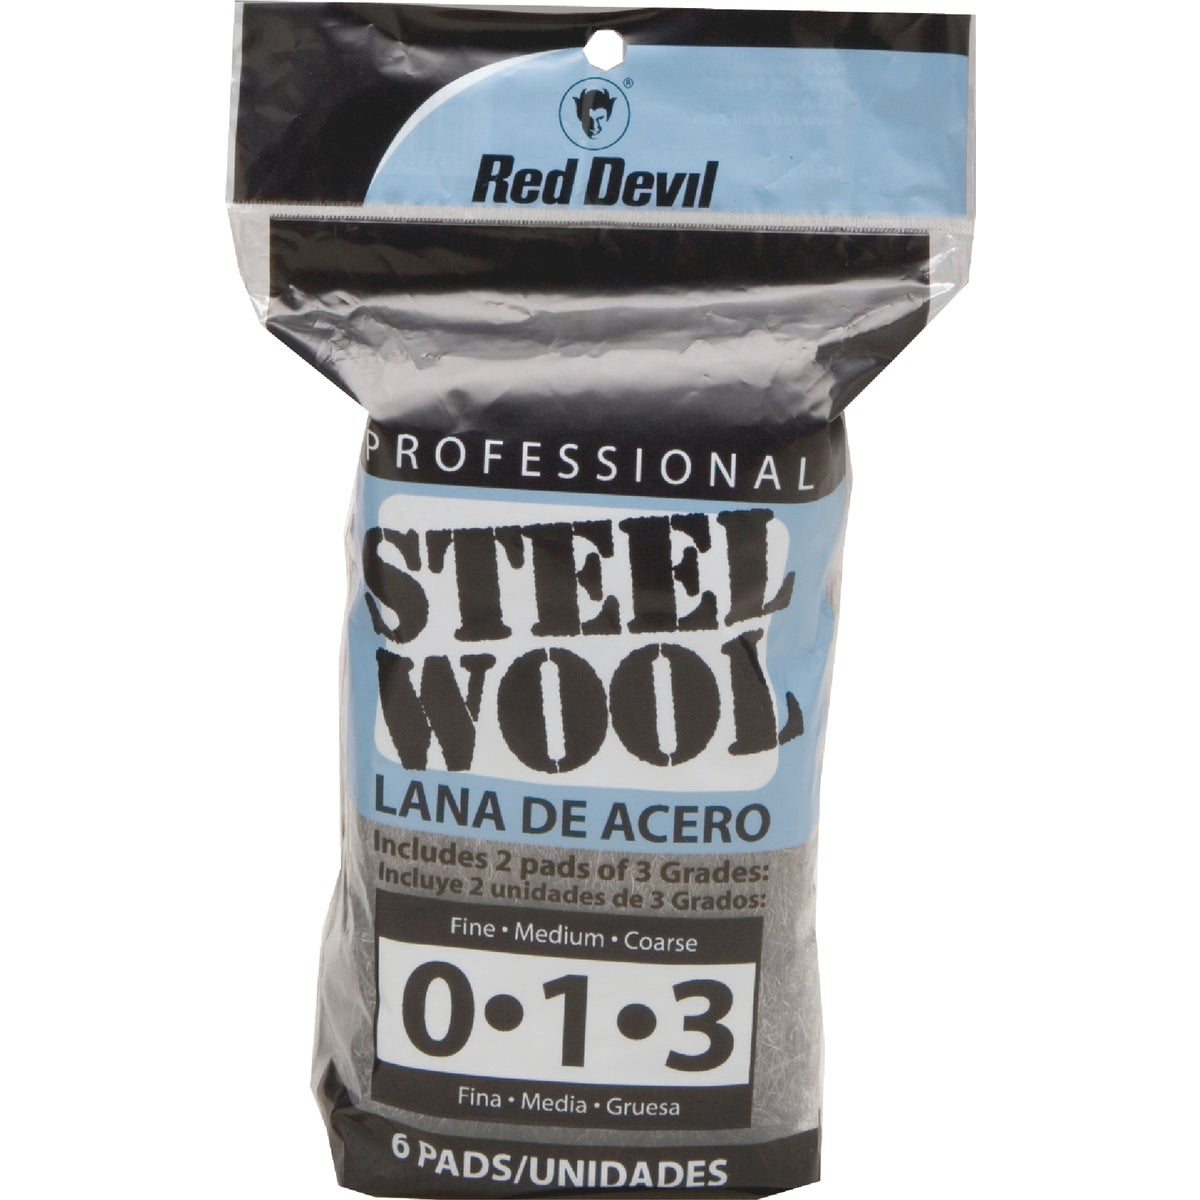 6PK ASSORTED STEEL WOOL - 3332 by Red Devil